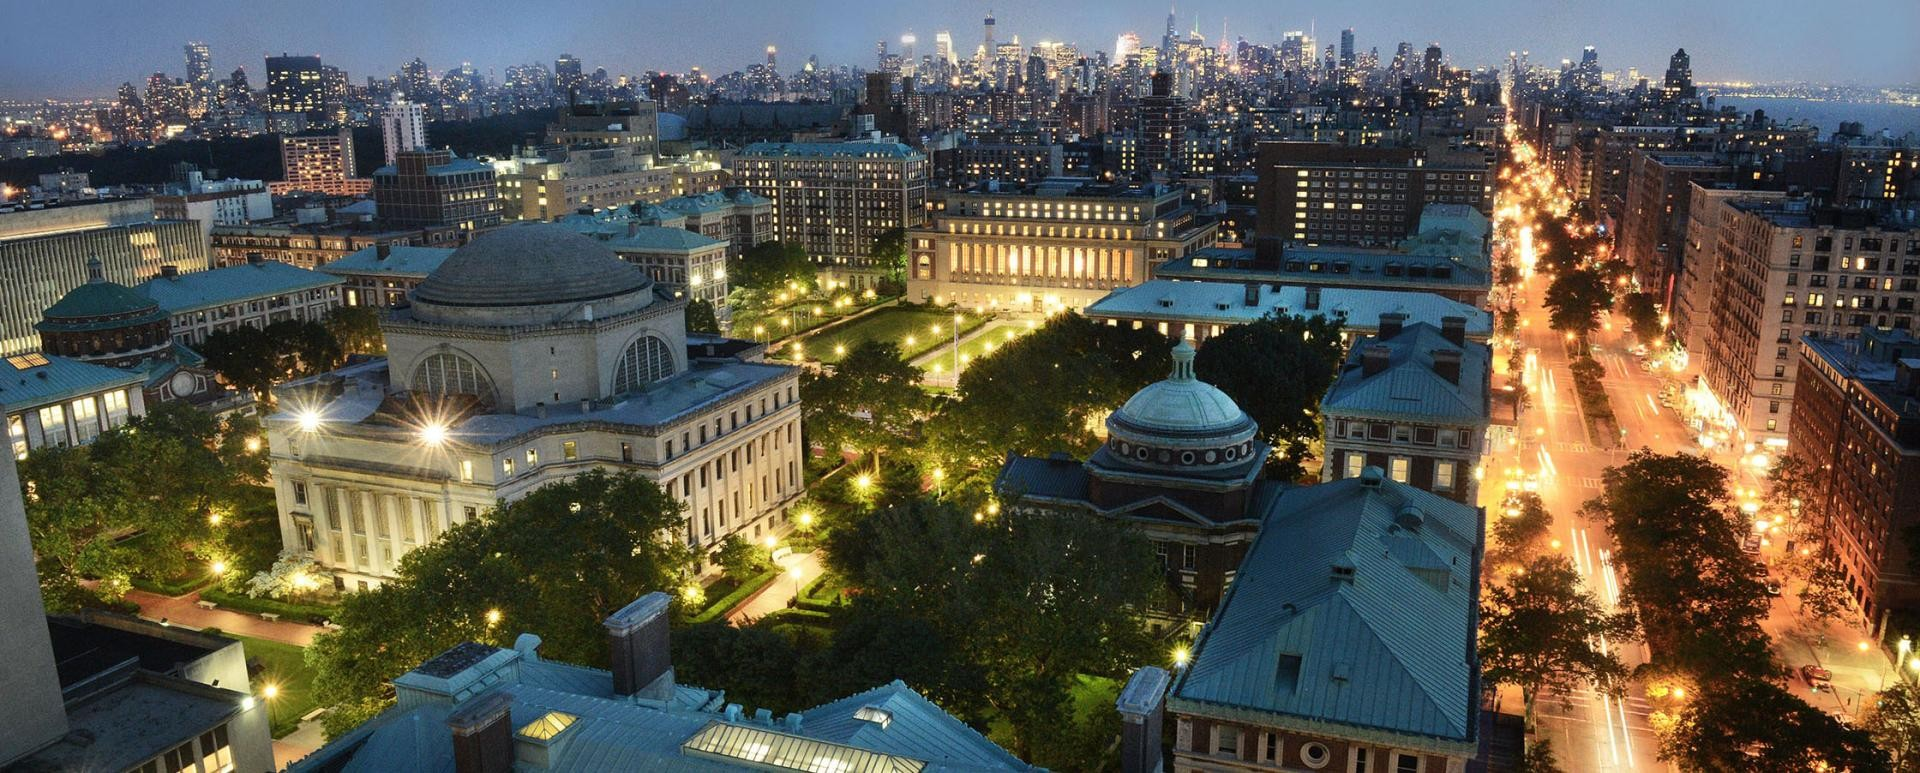 Angled view of Columbia's Morningside Heights campus at night with the Manhattan skyline in the background